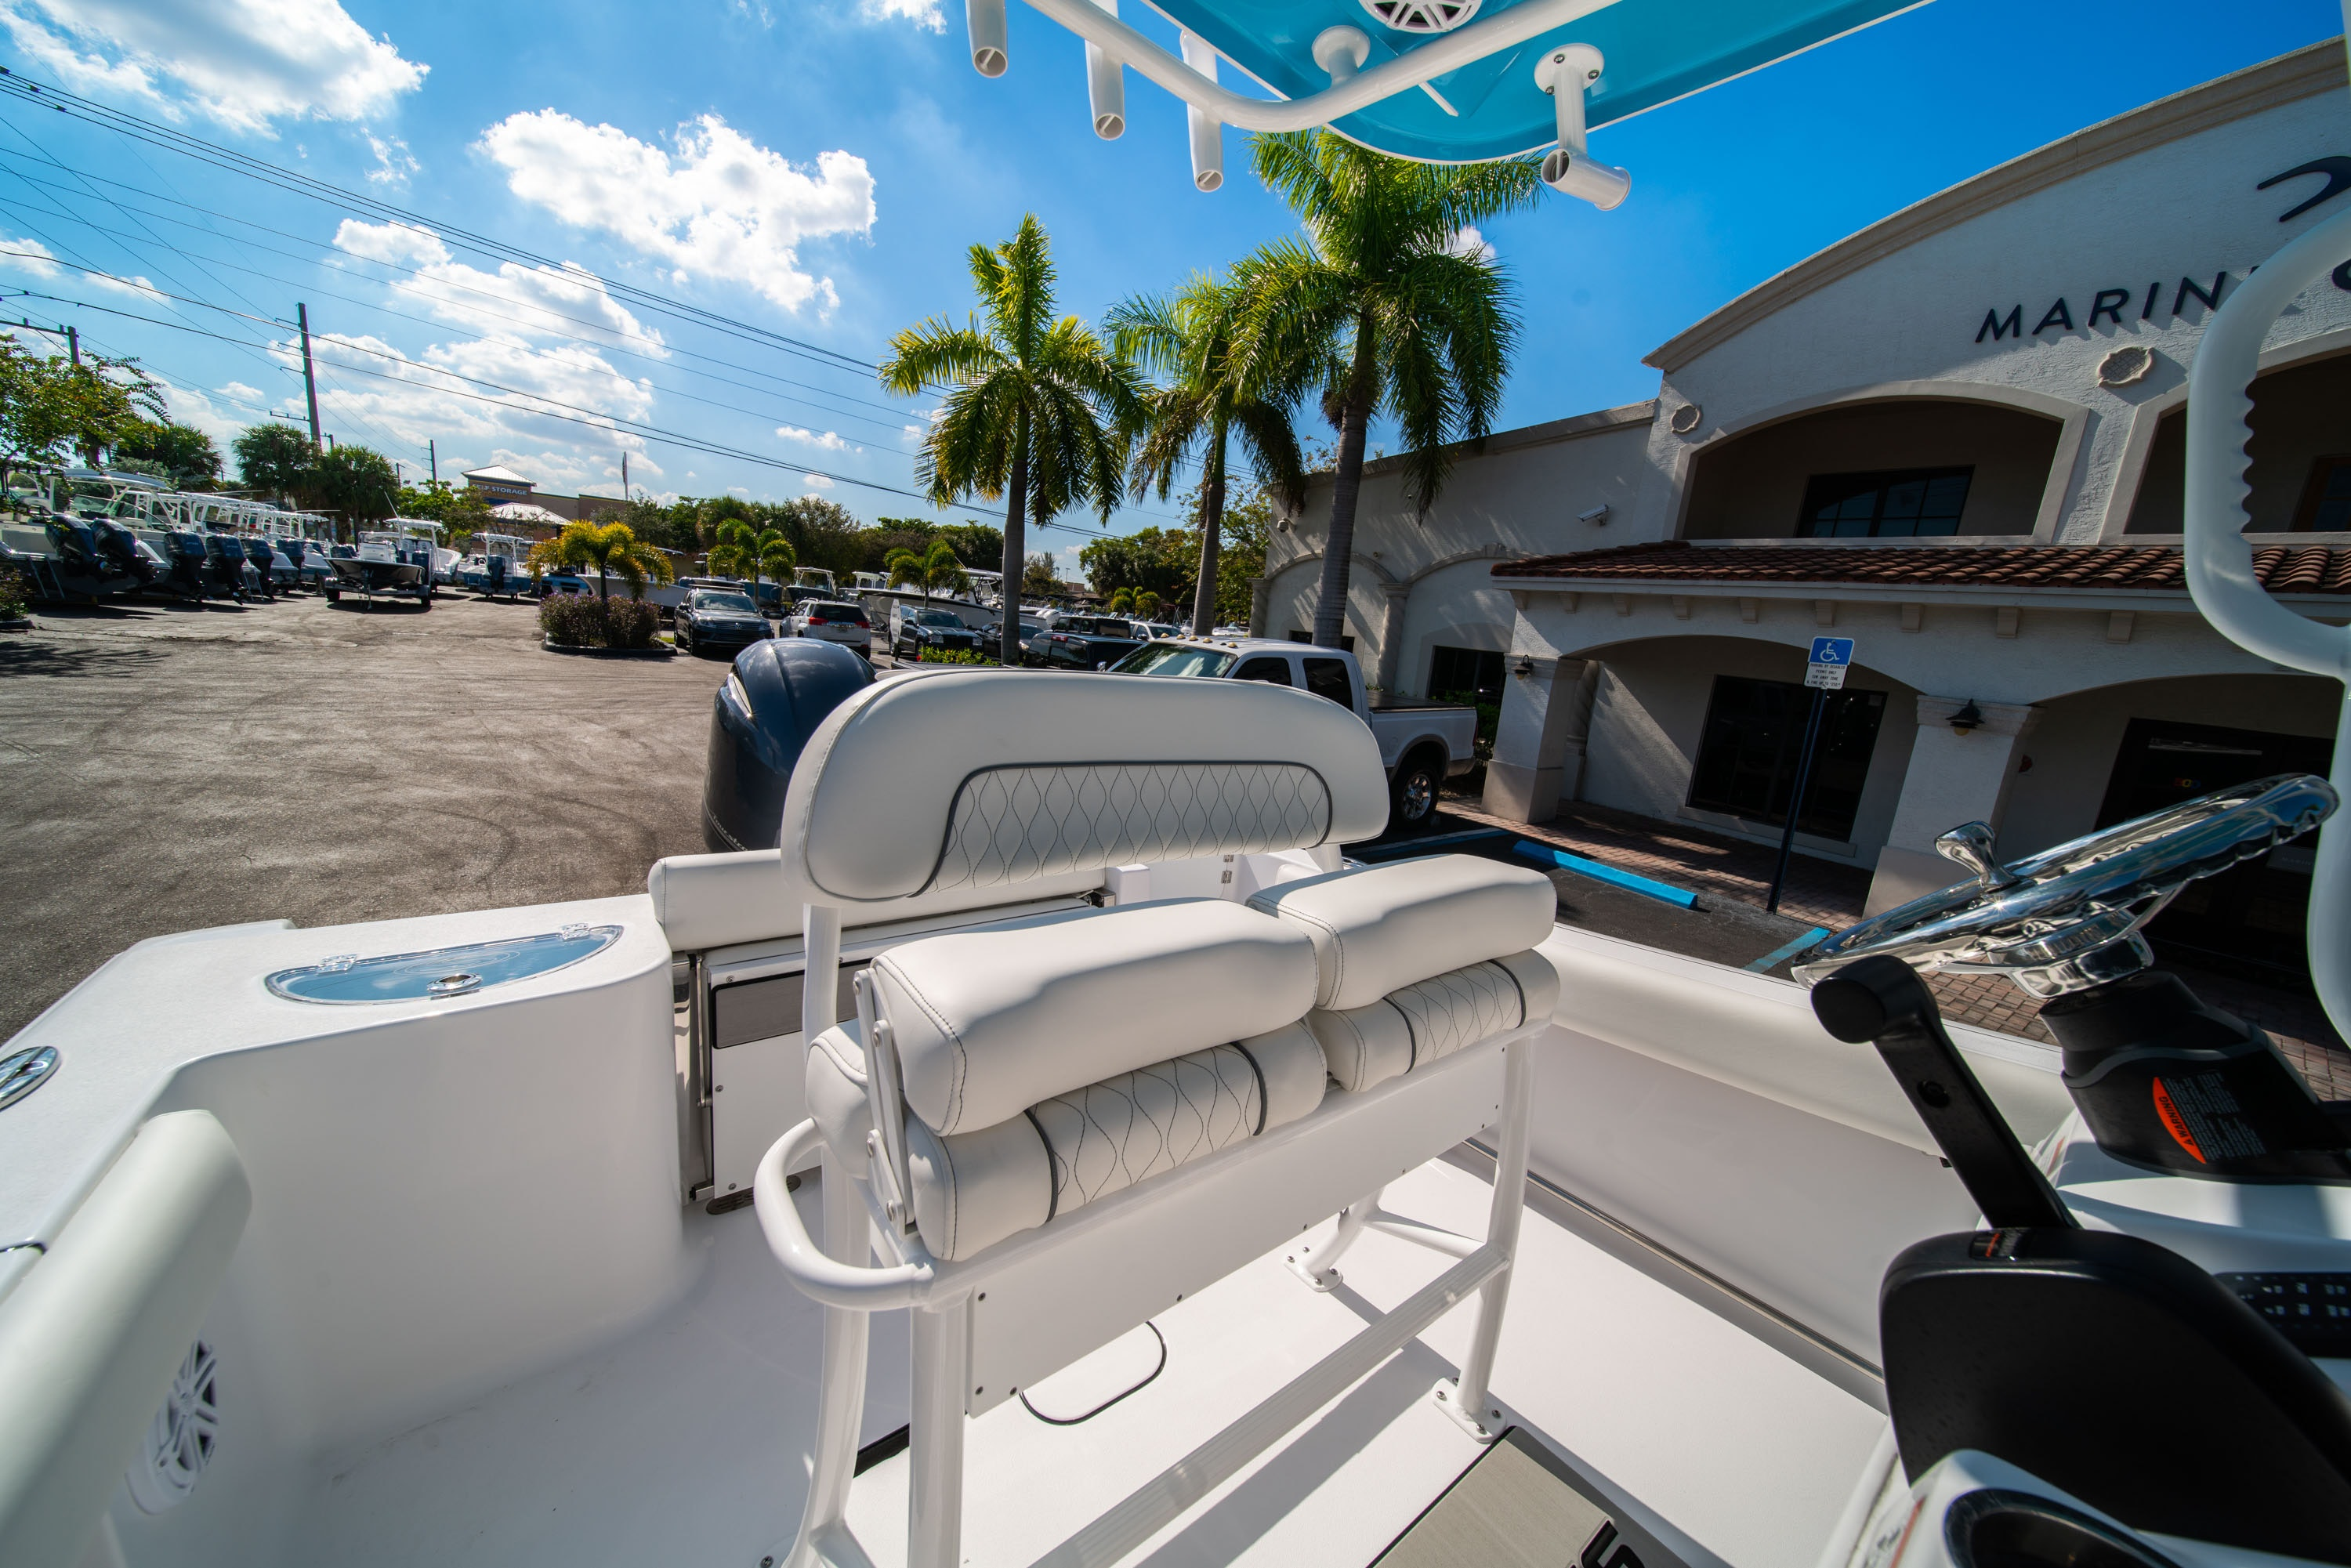 Thumbnail 25 for New 2020 Sportsman Open 212 Center Console boat for sale in West Palm Beach, FL